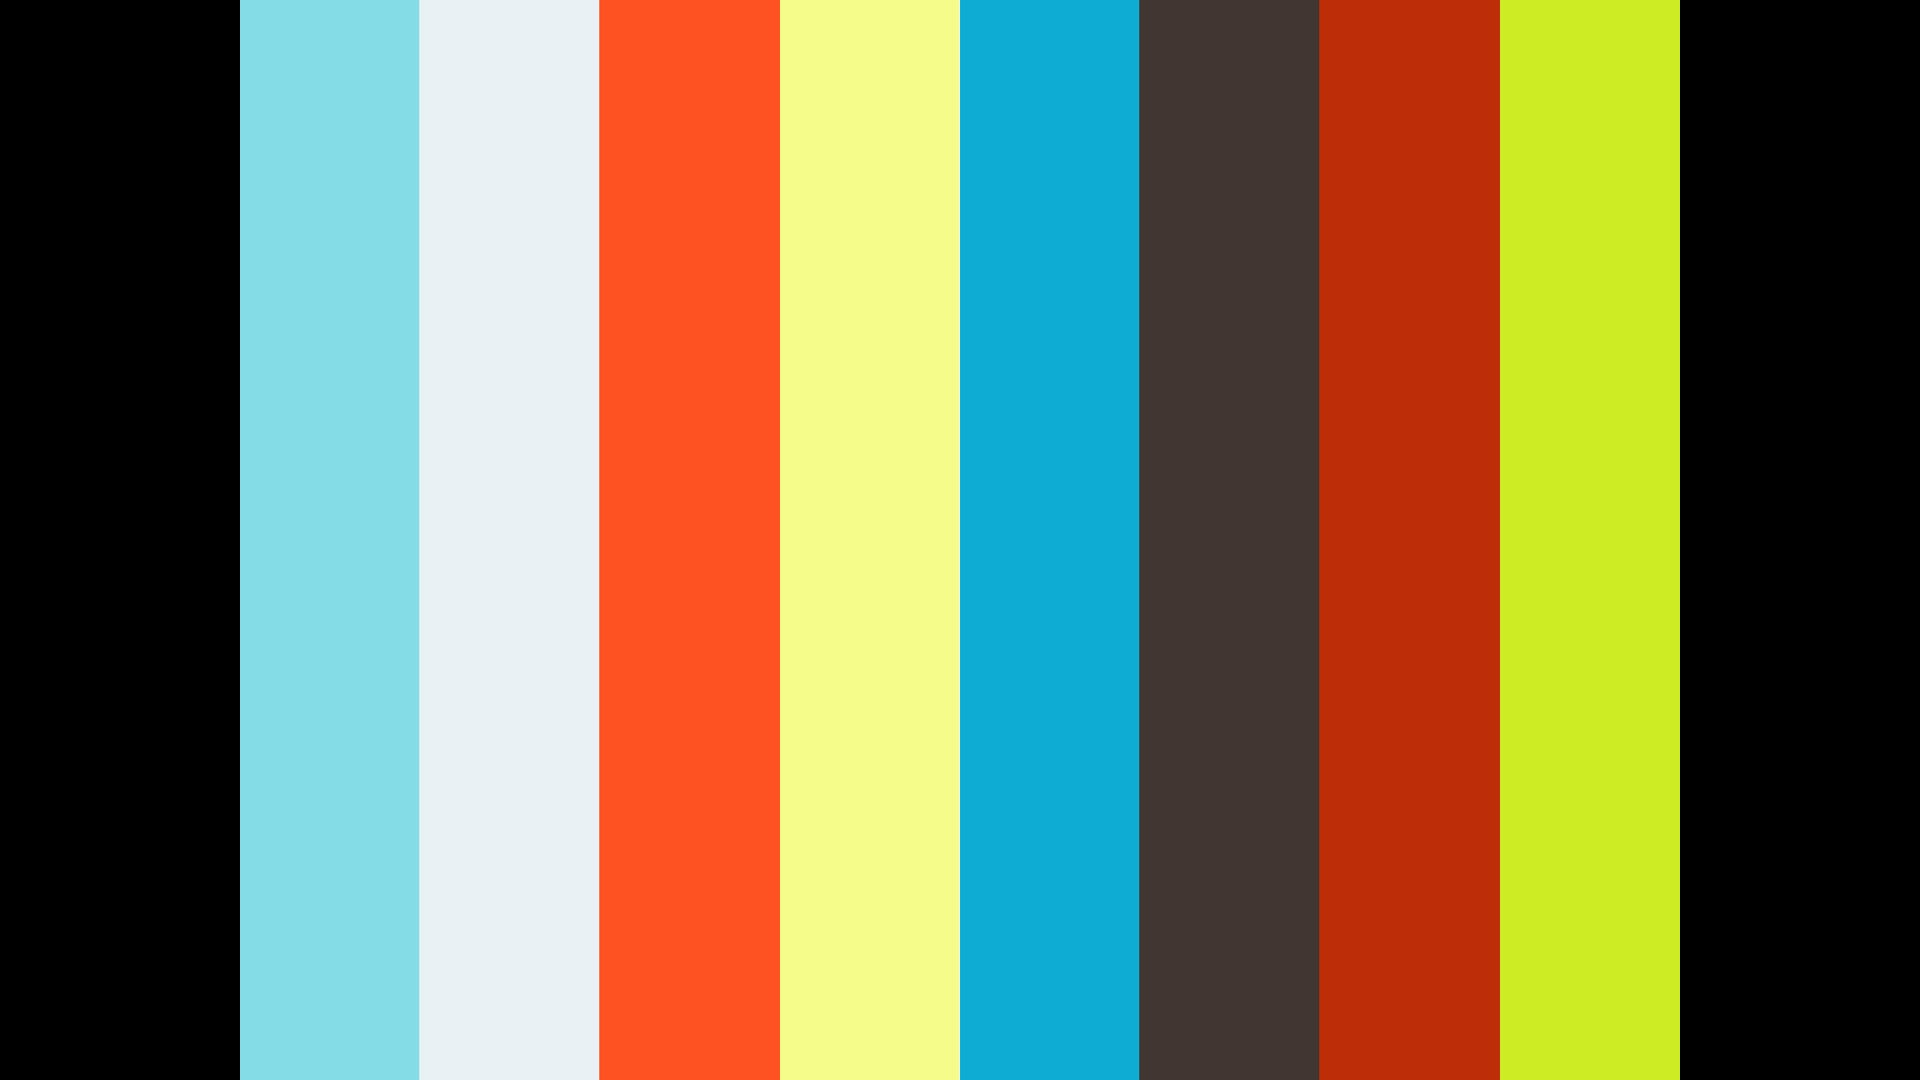 Rindus – The people company